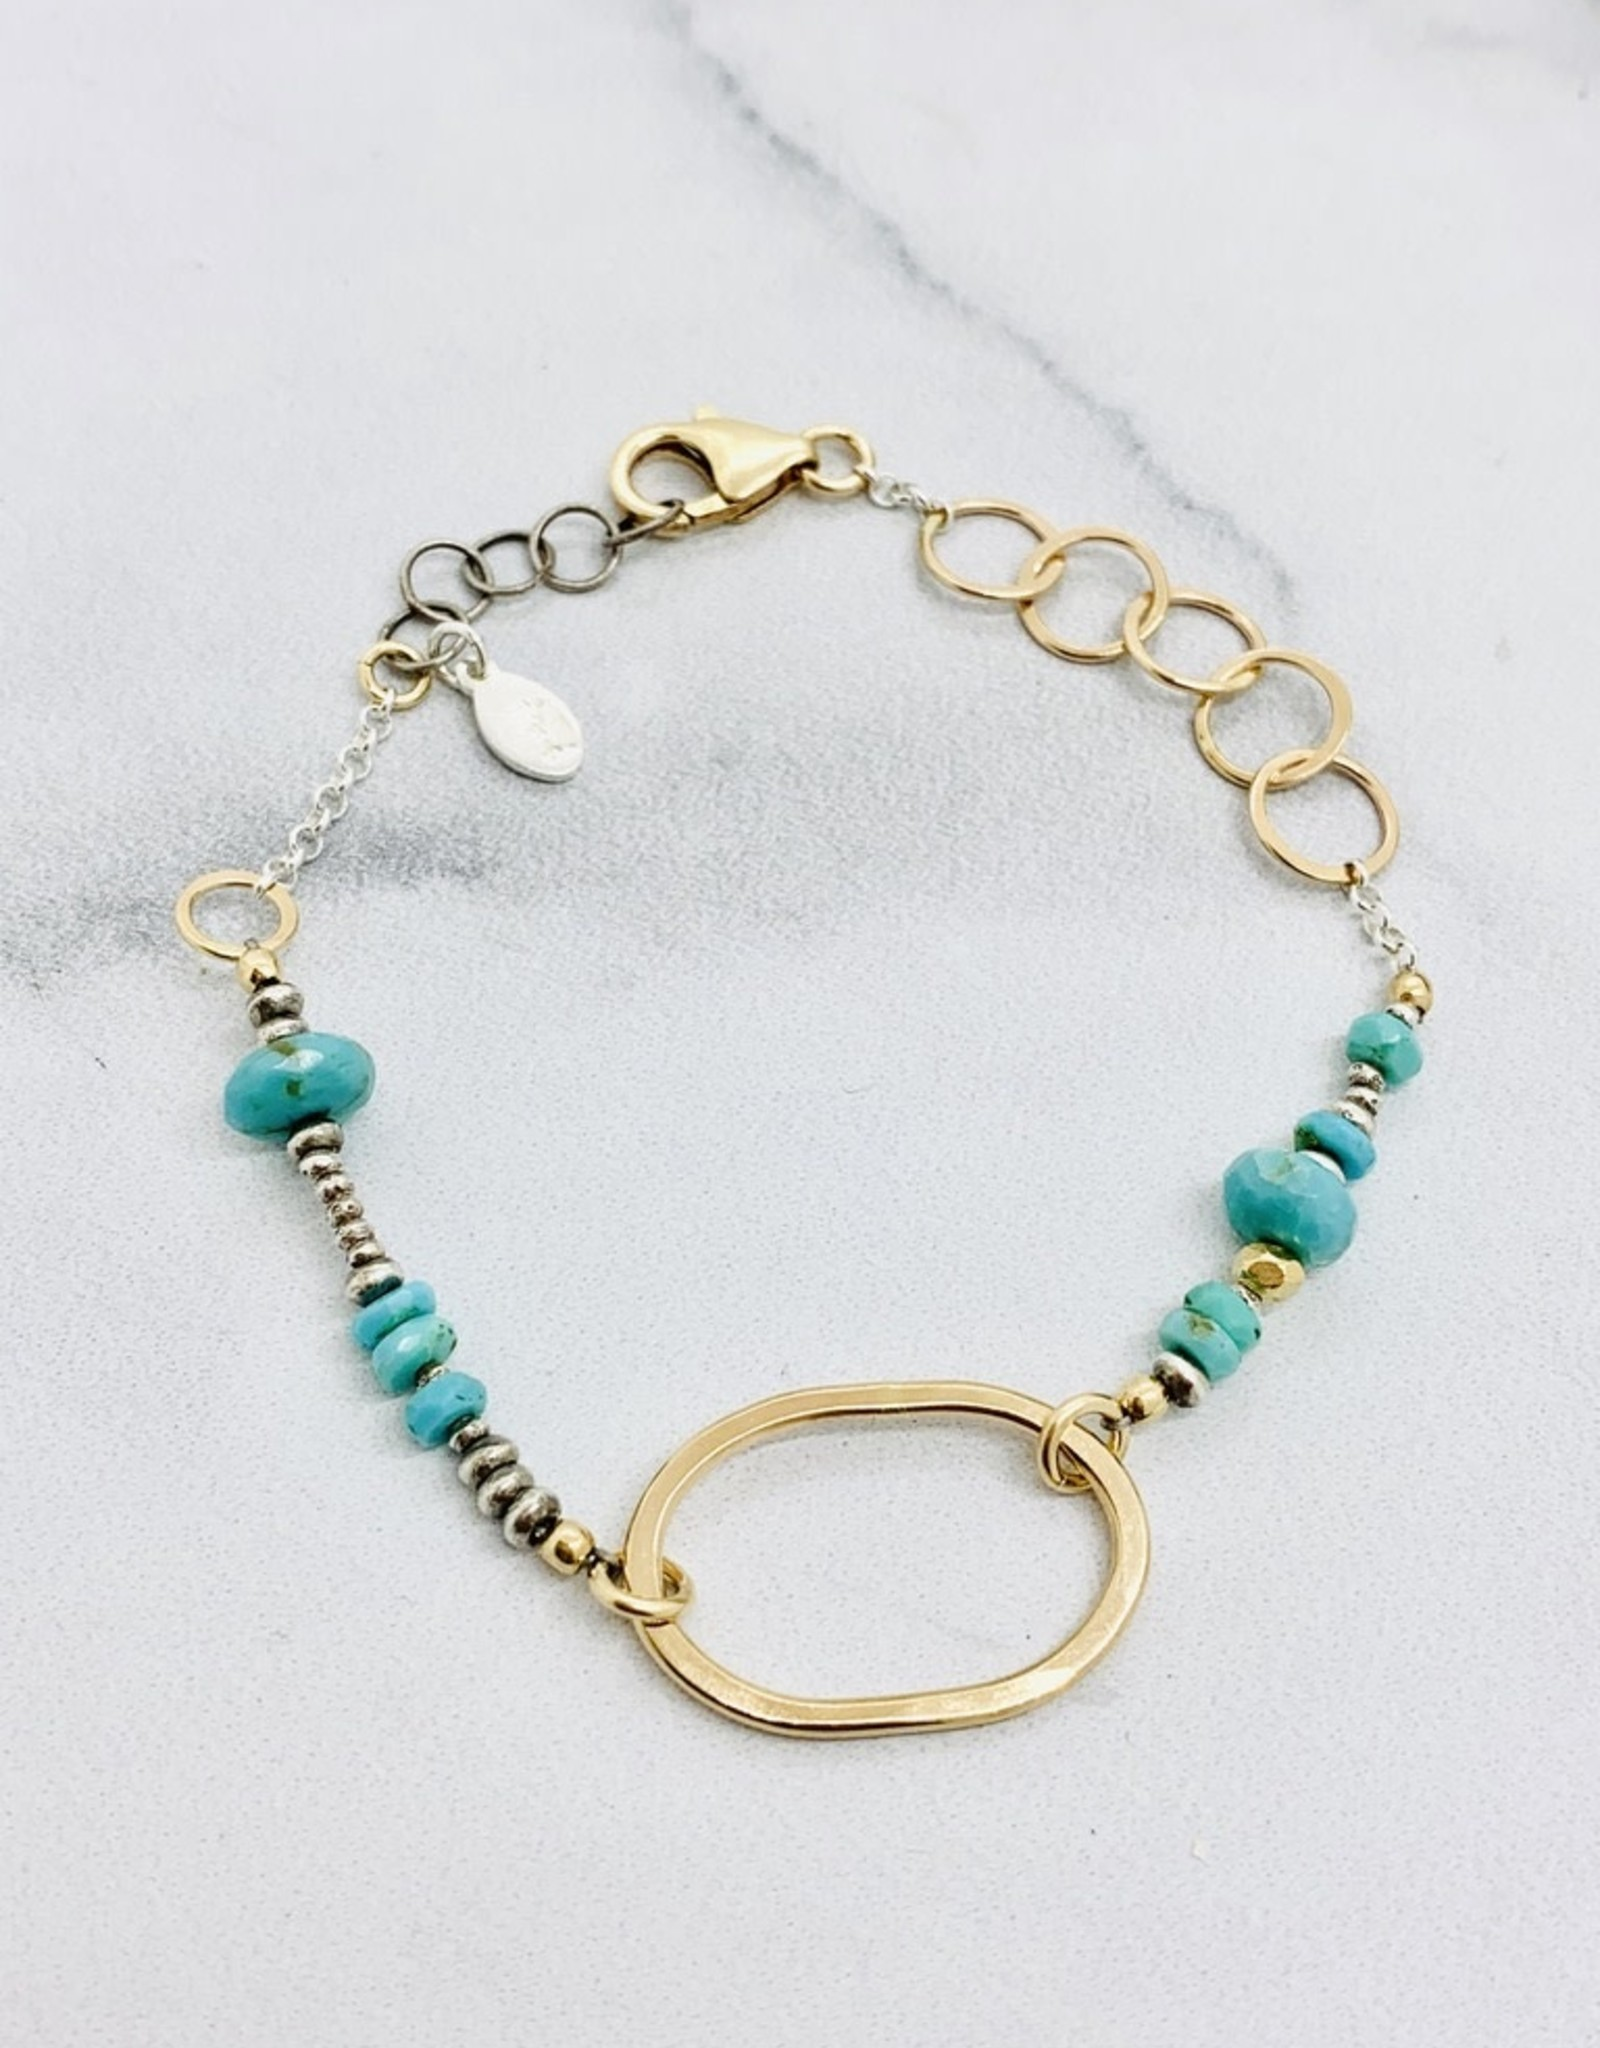 J&I Handmade Bracelet with 14kt Gold Filled Oval with Faceted Turquoise and Sterling